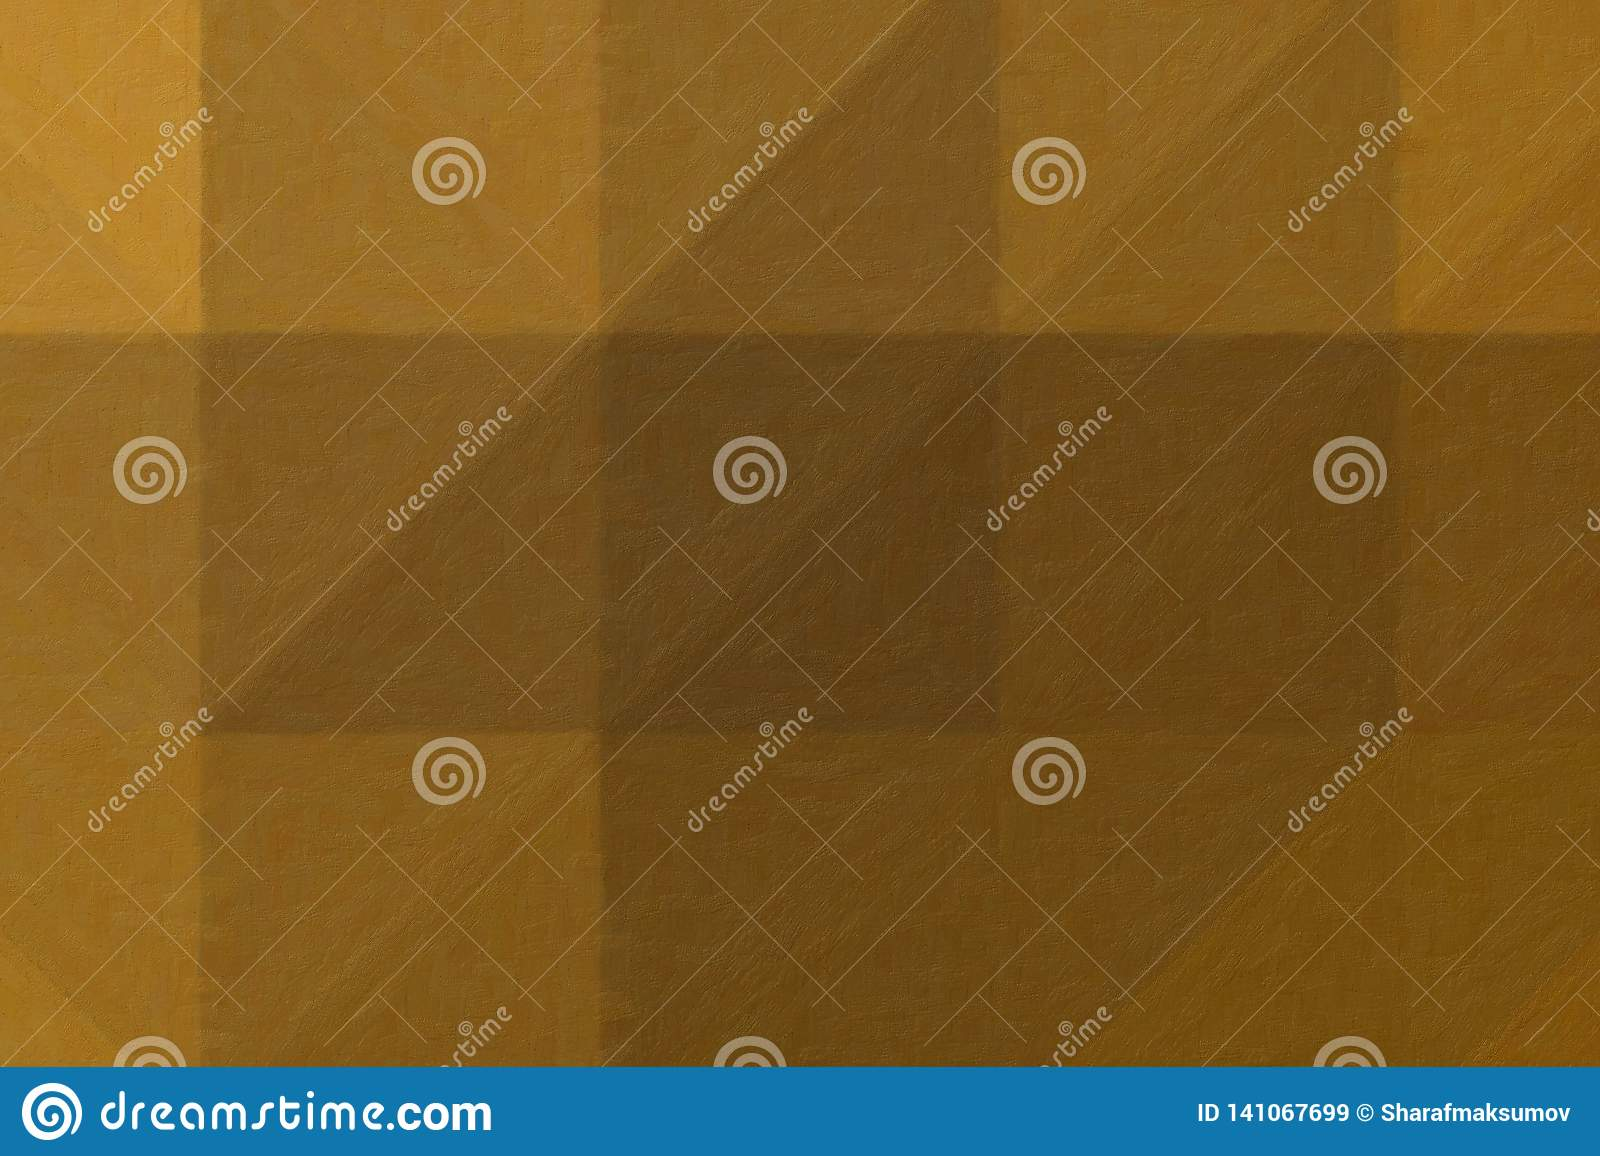 Stunning abstract illustration of brown and red Impasto with soft brush paint. Good background for your work